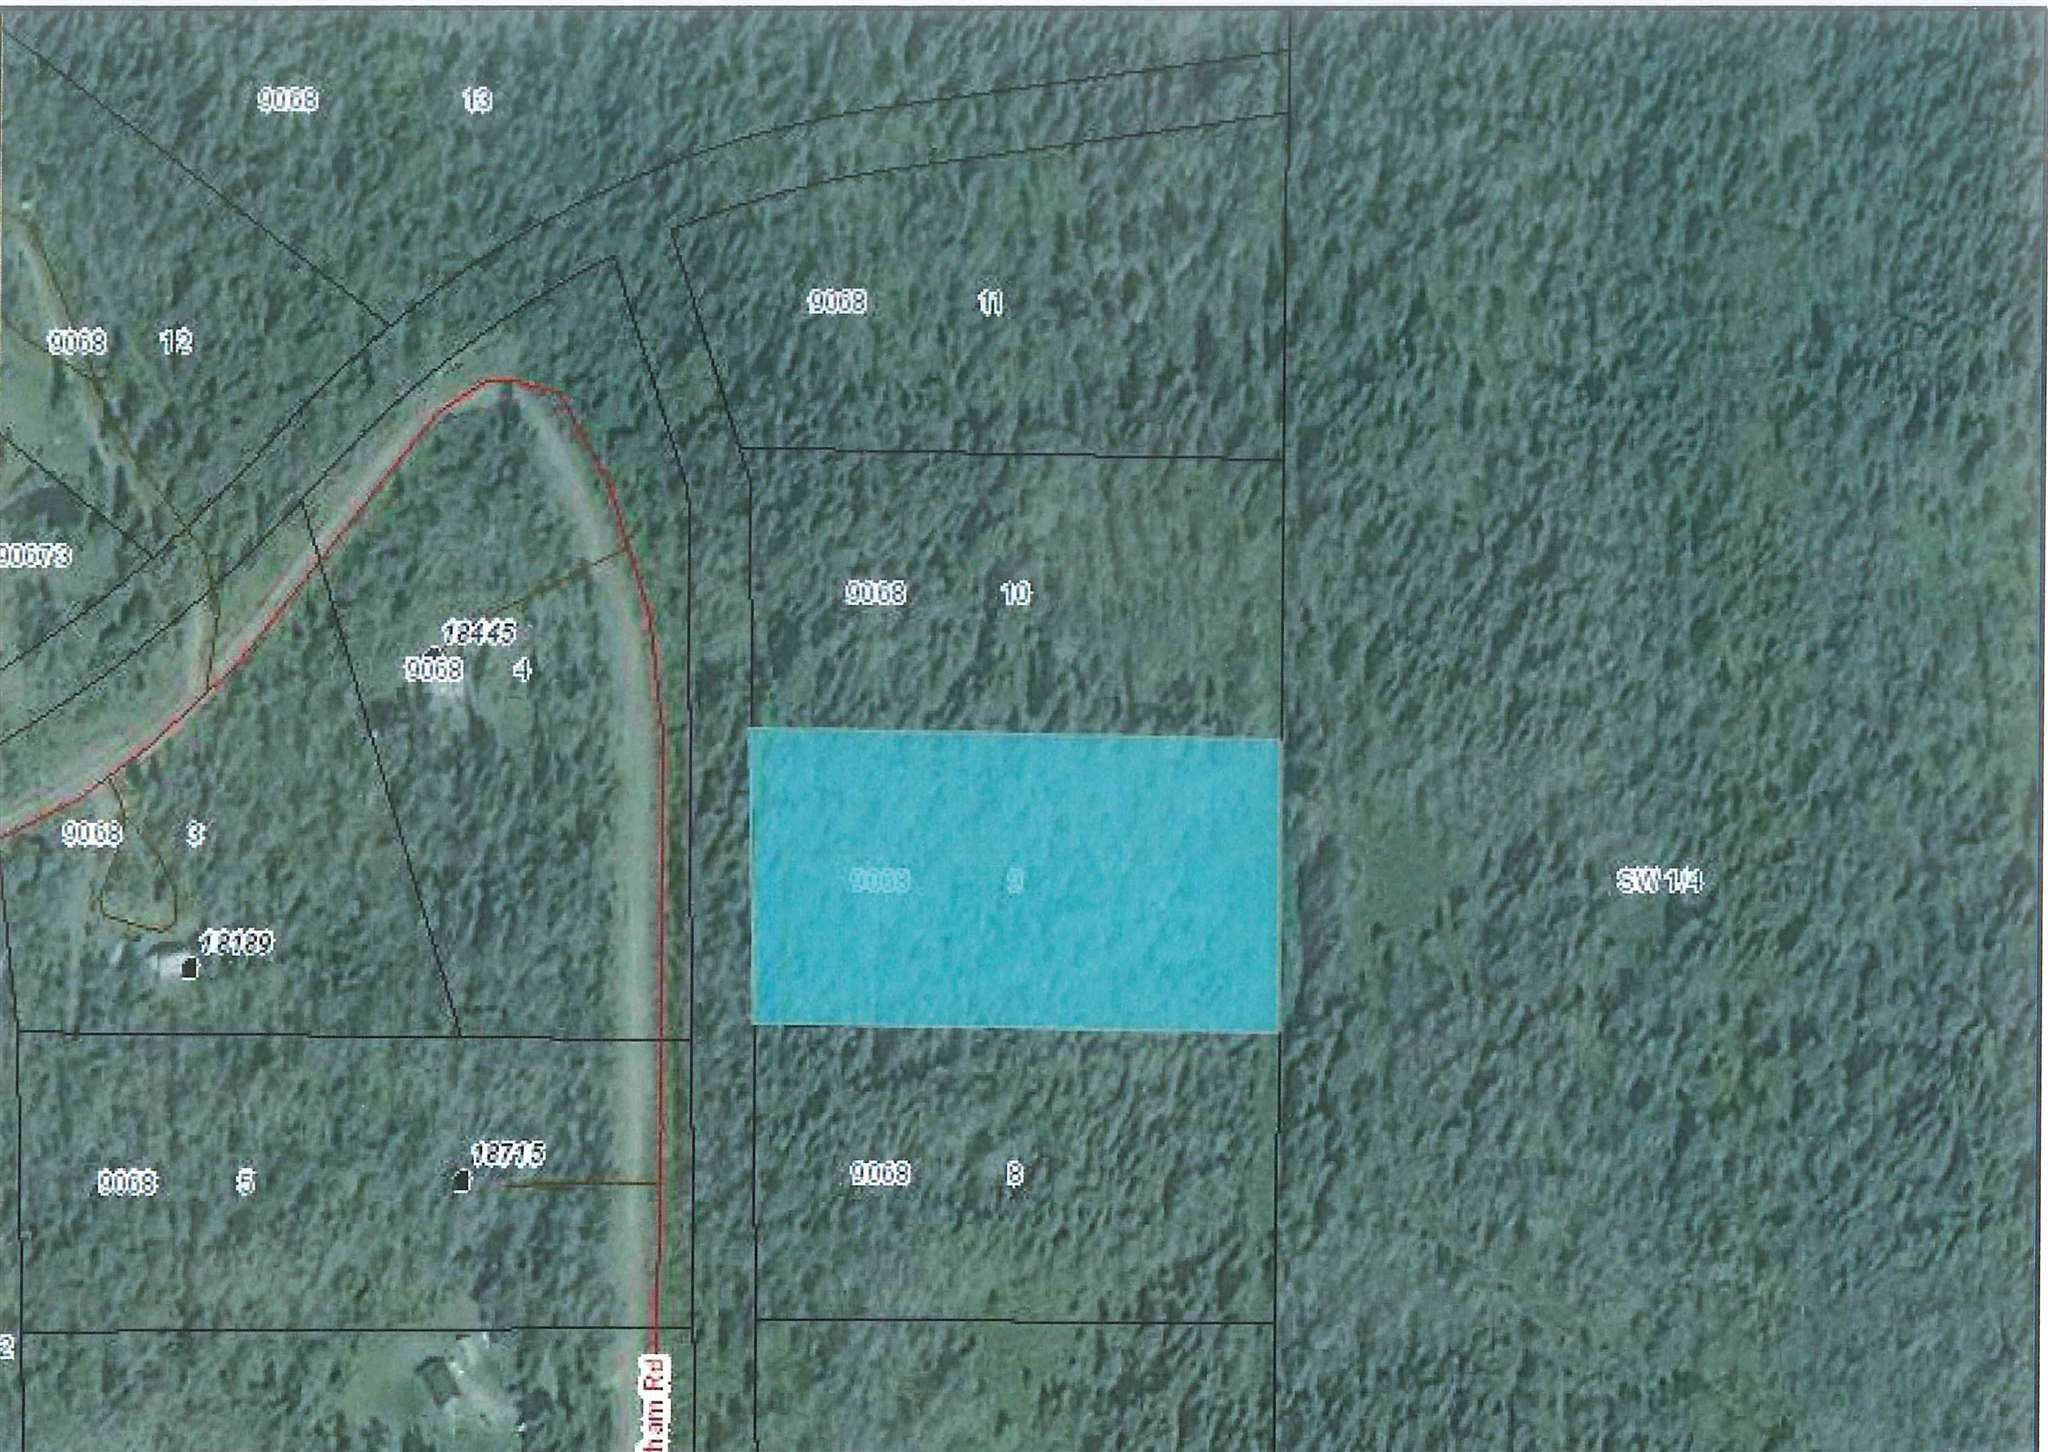 """Main Photo: LOT 9 GRANTHAM Road in Smithers: Smithers - Rural Land for sale in """"Grantham"""" (Smithers And Area (Zone 54))  : MLS®# R2604033"""